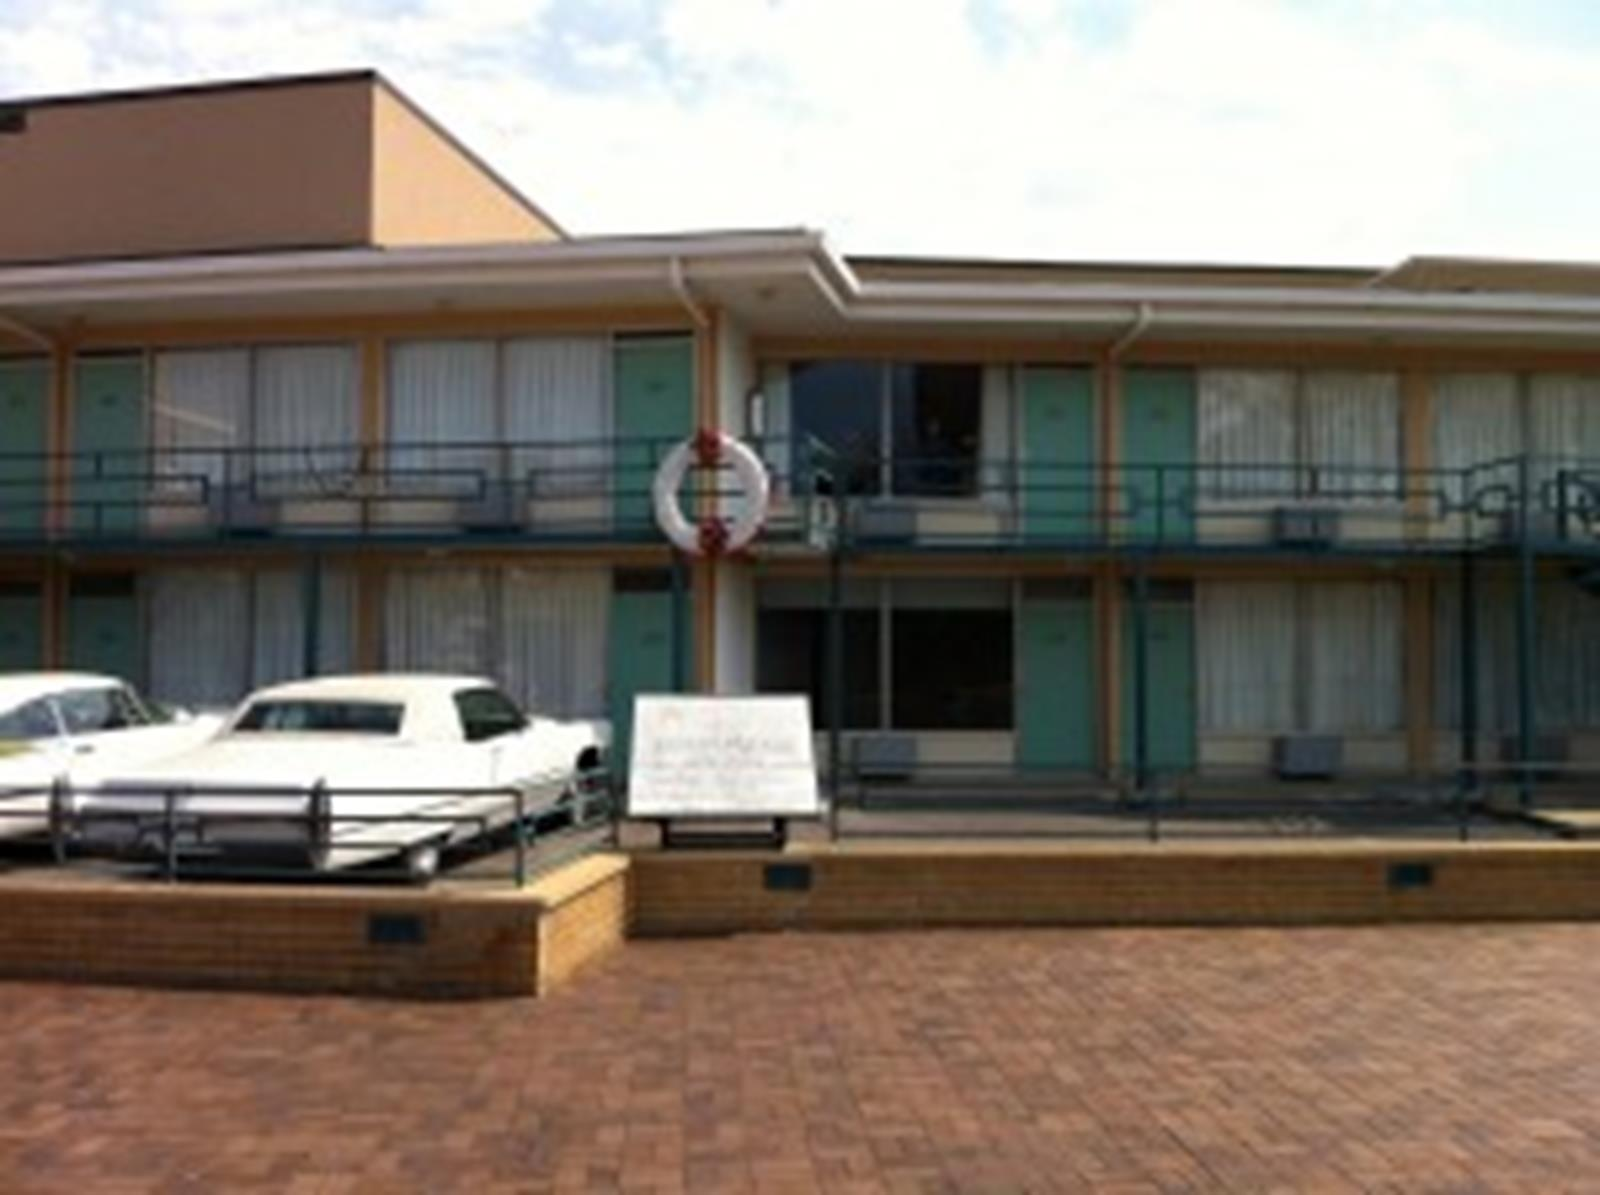 The Civil Rights Museum at the Lorraine Motel, the wreath marks the approximate spot where Dr. King was assassinated.